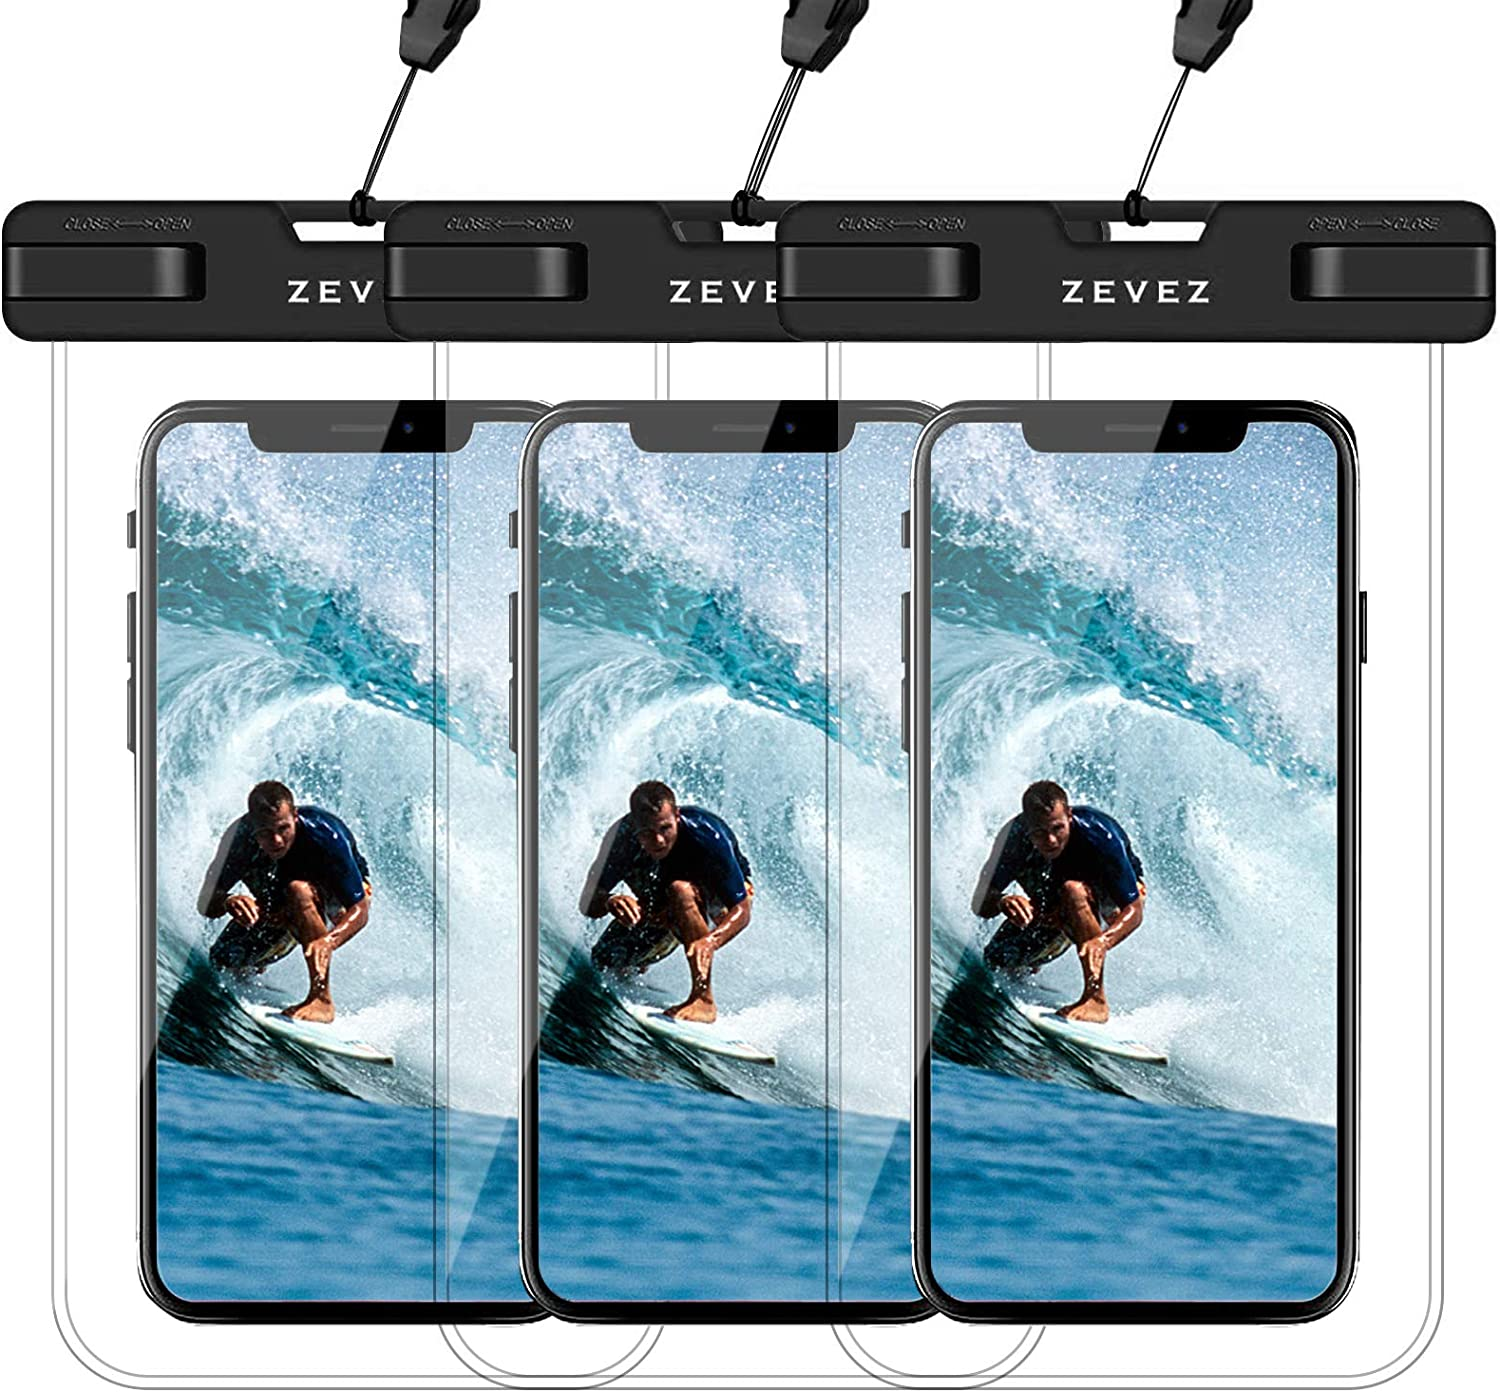 3 Pack Universal Waterproof Case Floating Phone Pouch, Dry Bags for Cell Phone, Summer Water Sports and Dive for iPhone 12 11 Pro Max Xs Max XR X 8 7 Plus, Galaxy S21 Pixel HTC LG Sony Moto Up to 7